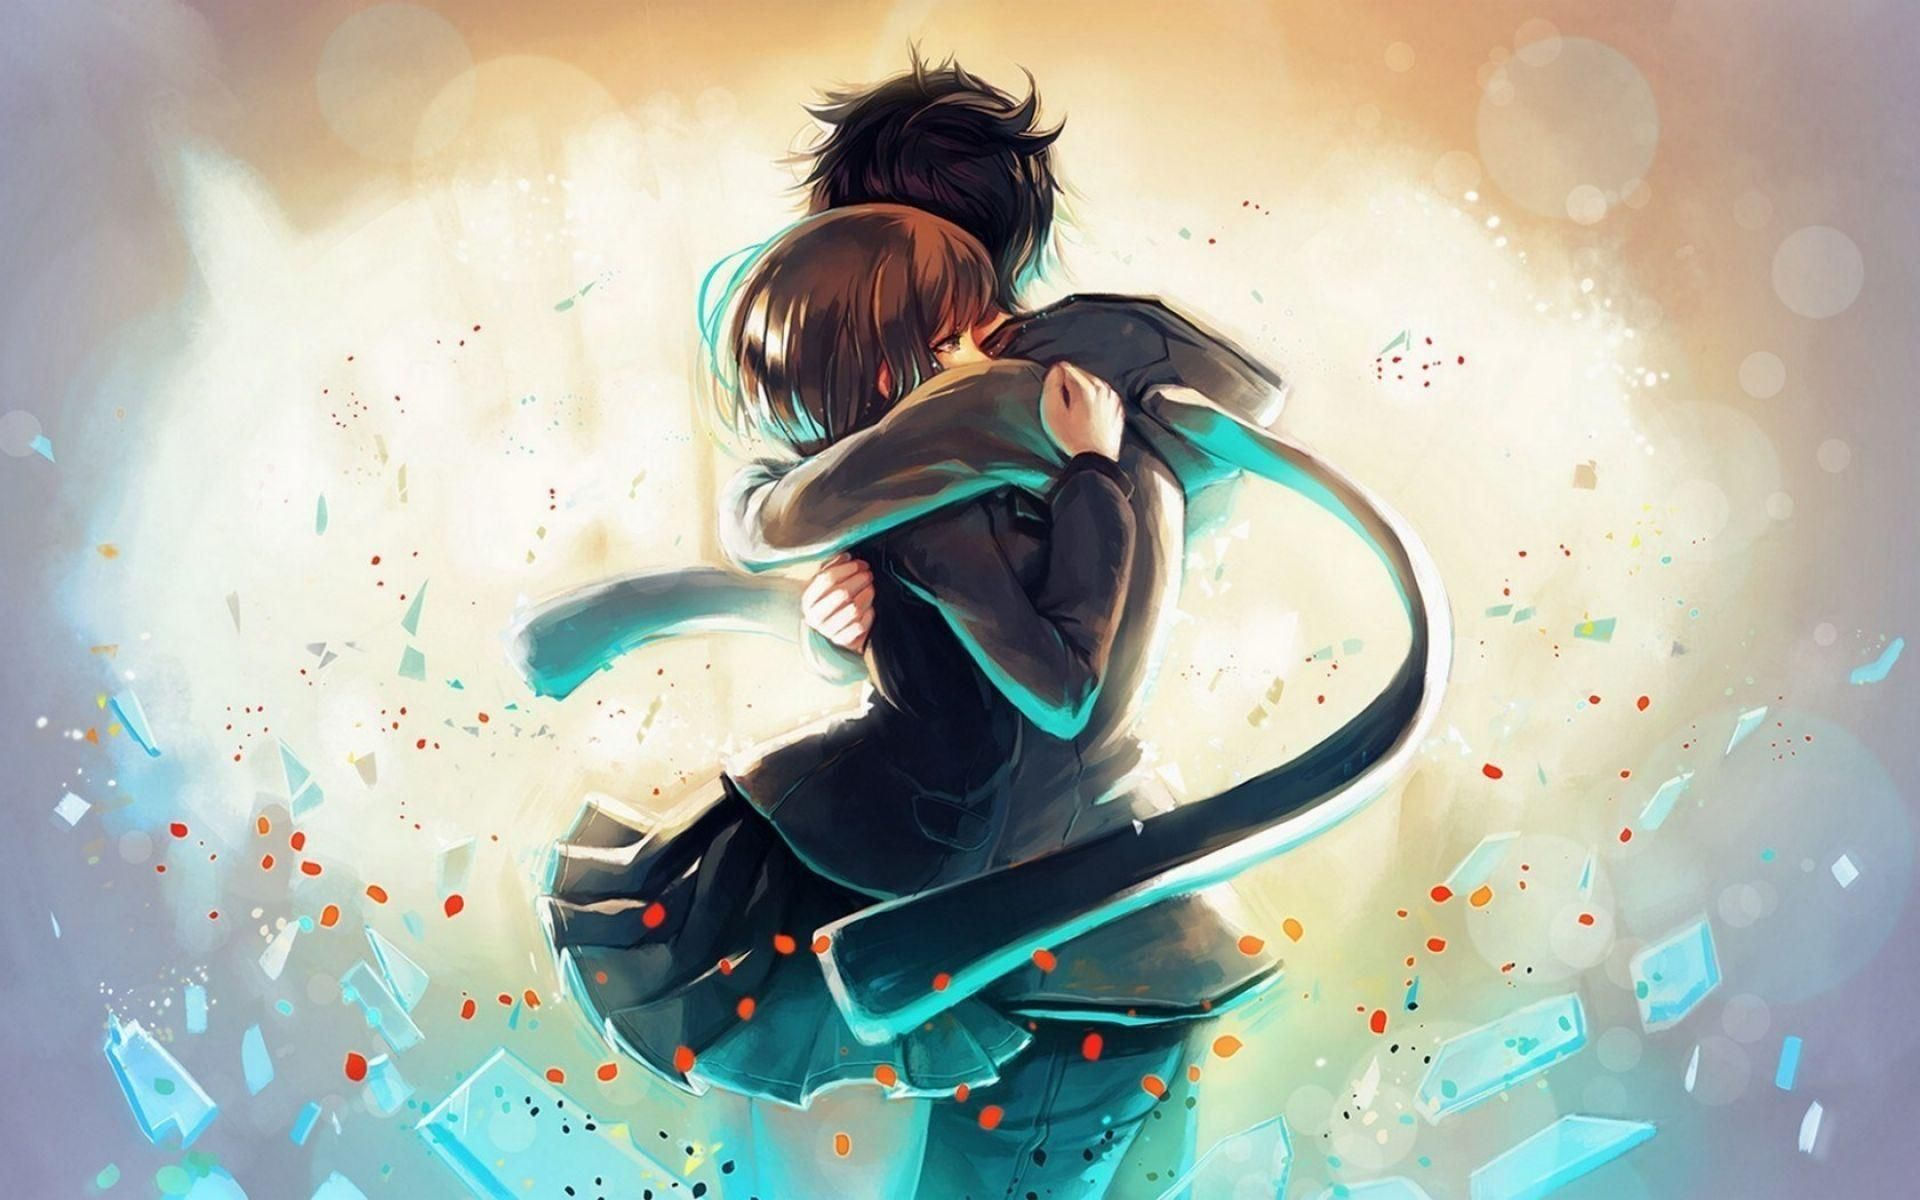 Couples Anime Wallpapers Wallpaper Cave Anime Art Beautiful Hd Anime Wallpapers Anime Wallpaper Download